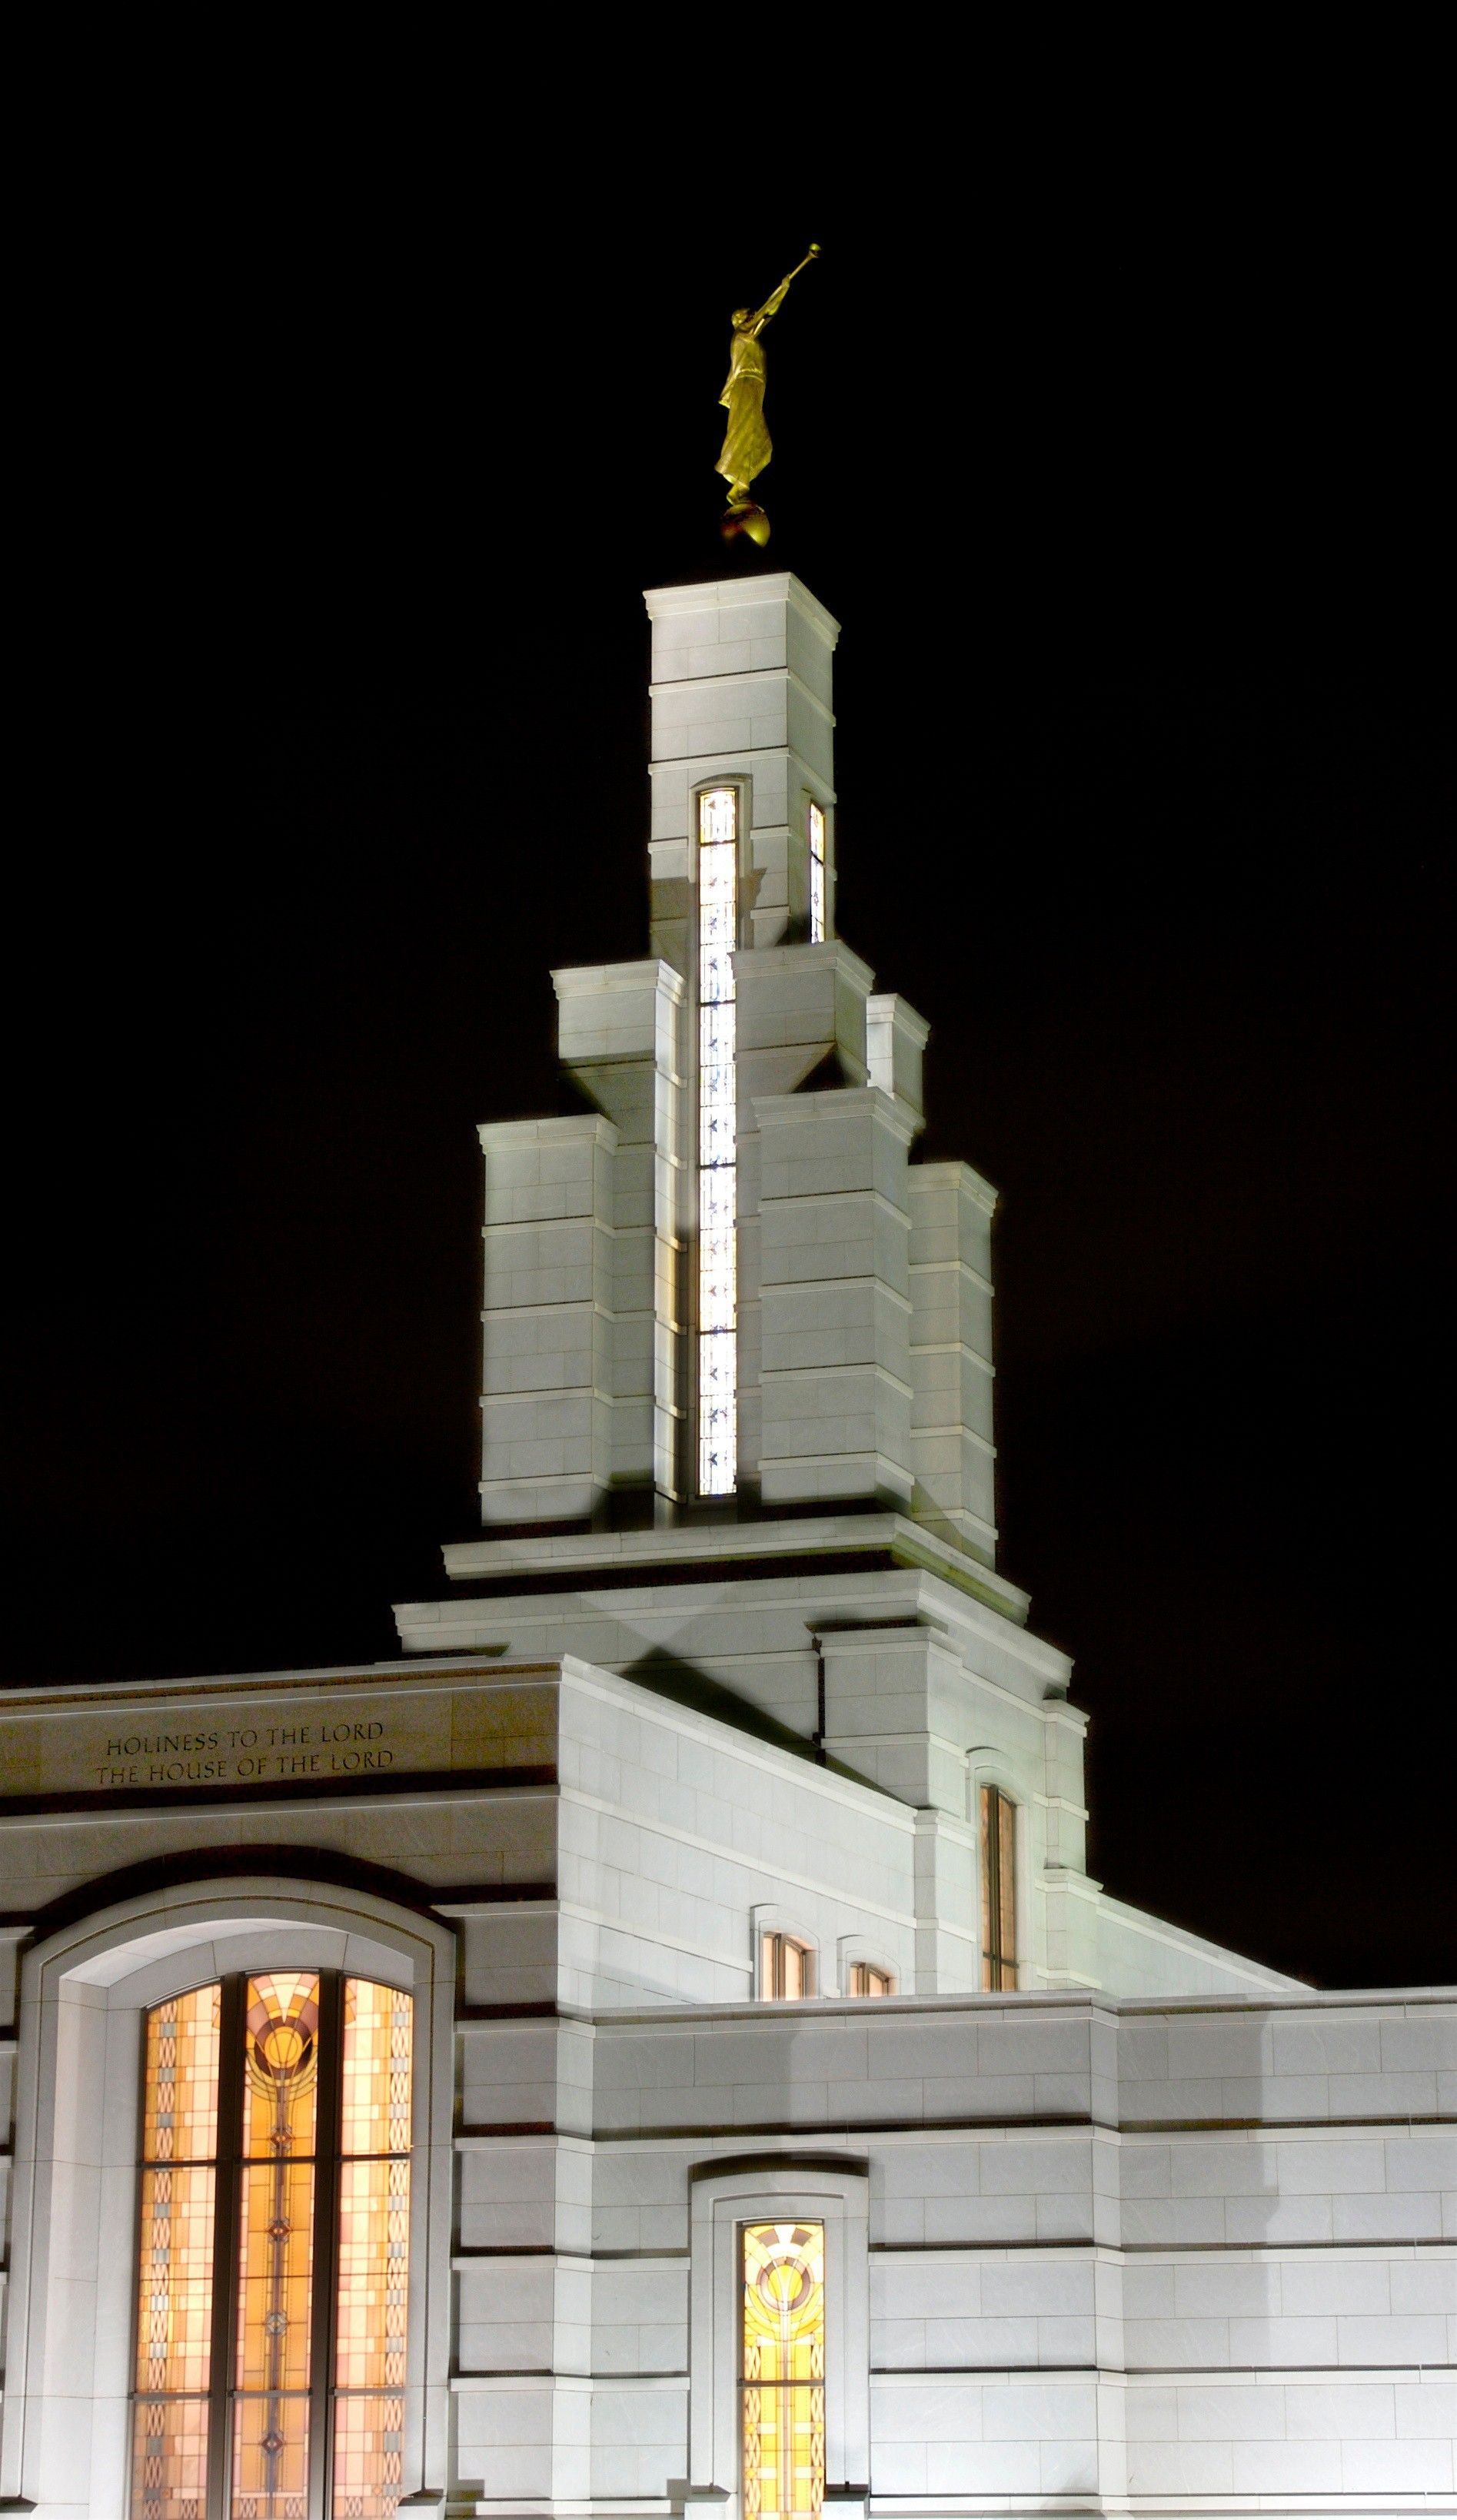 Lights shine on the Accra Ghana Temple at night.